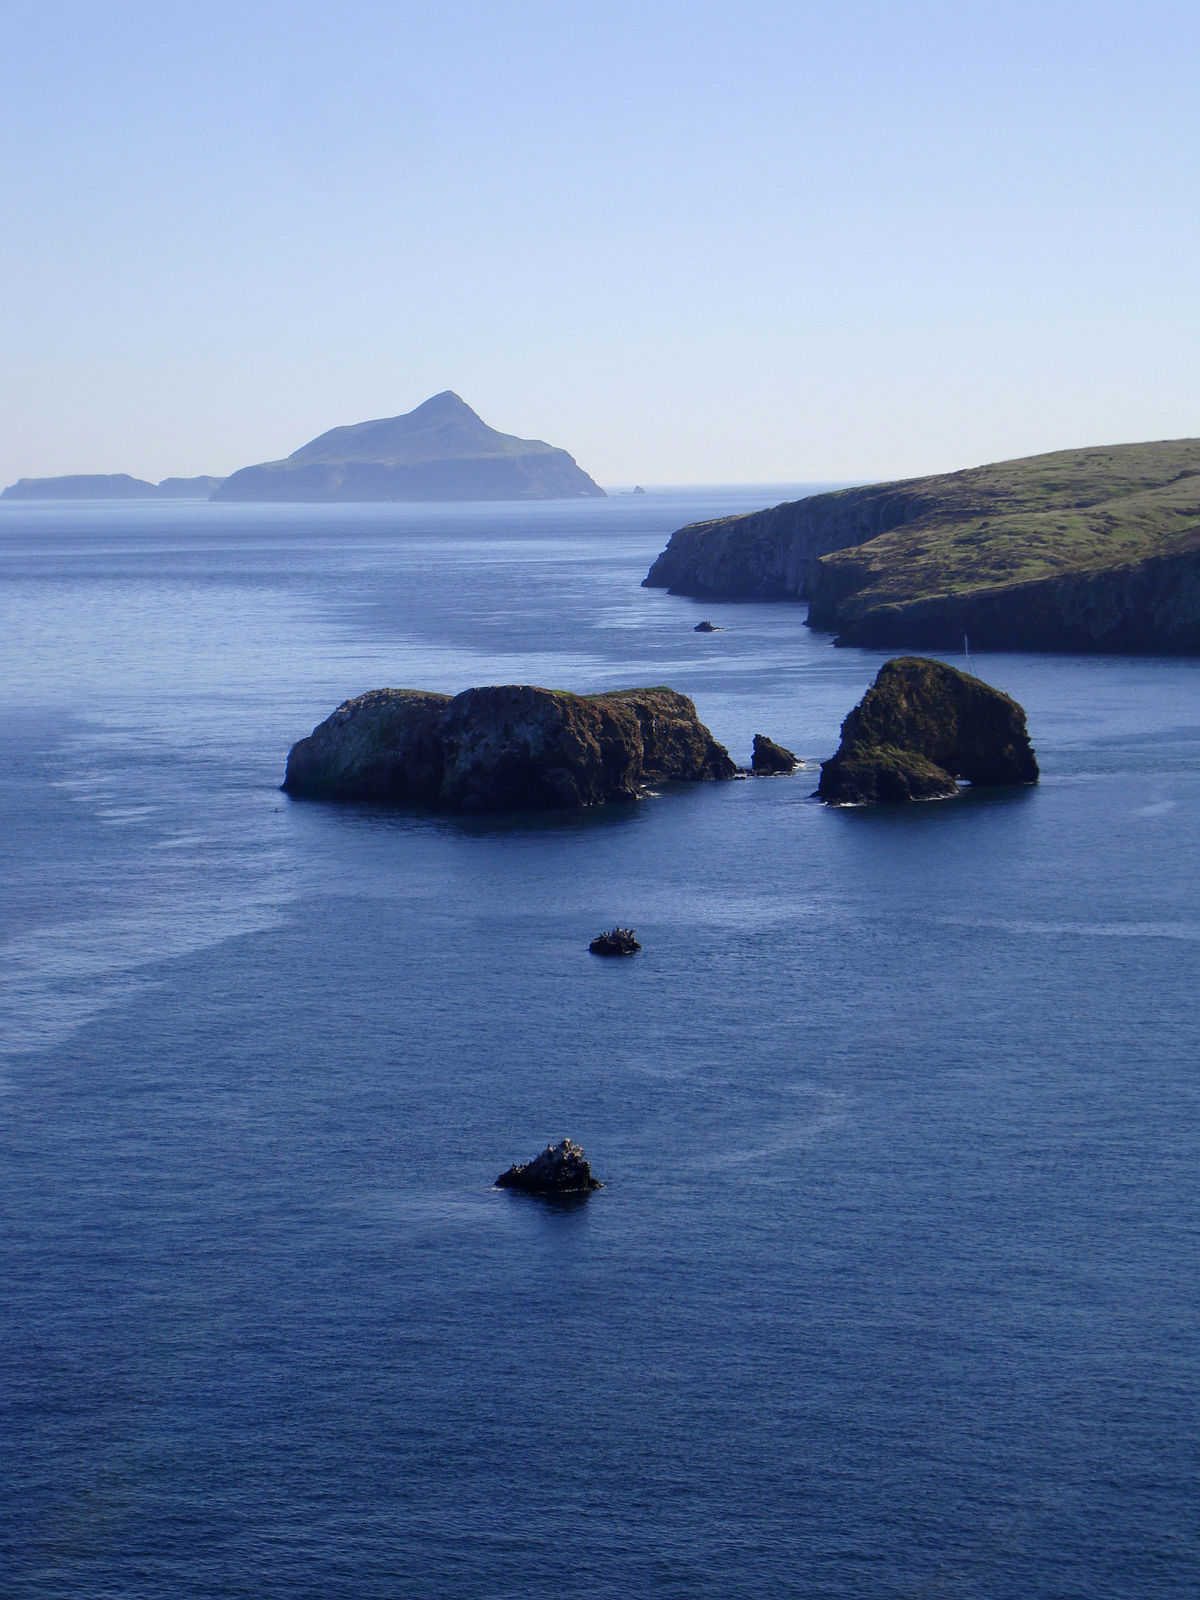 Channel Islands National Park Travel guide at Wikivoyage